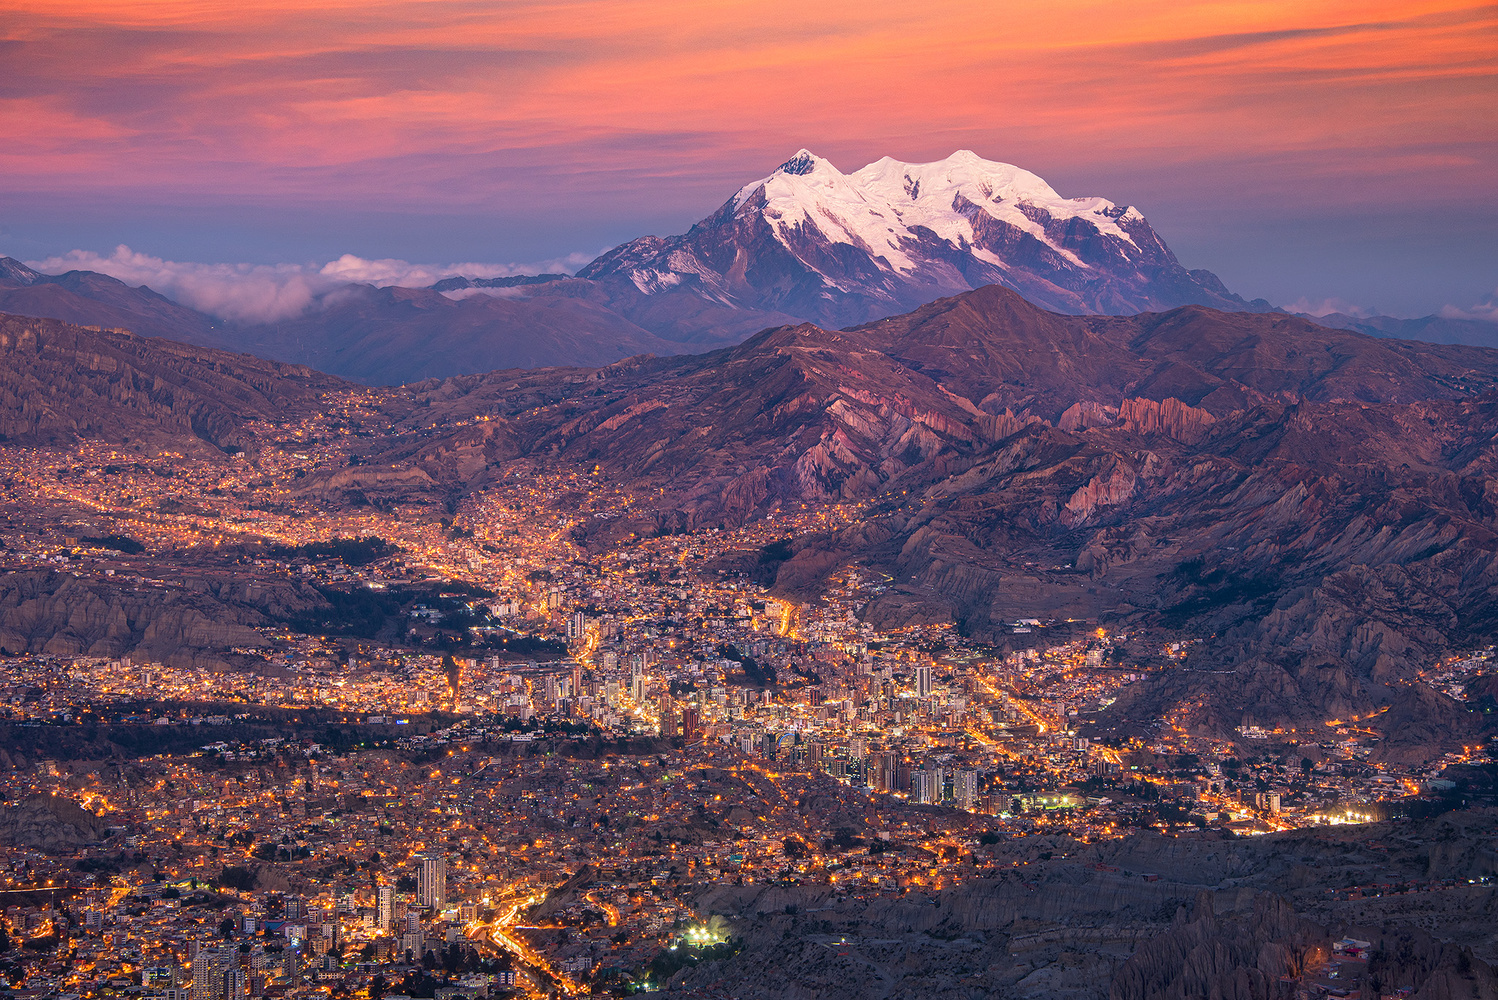 View to Illimani by Donald Yip